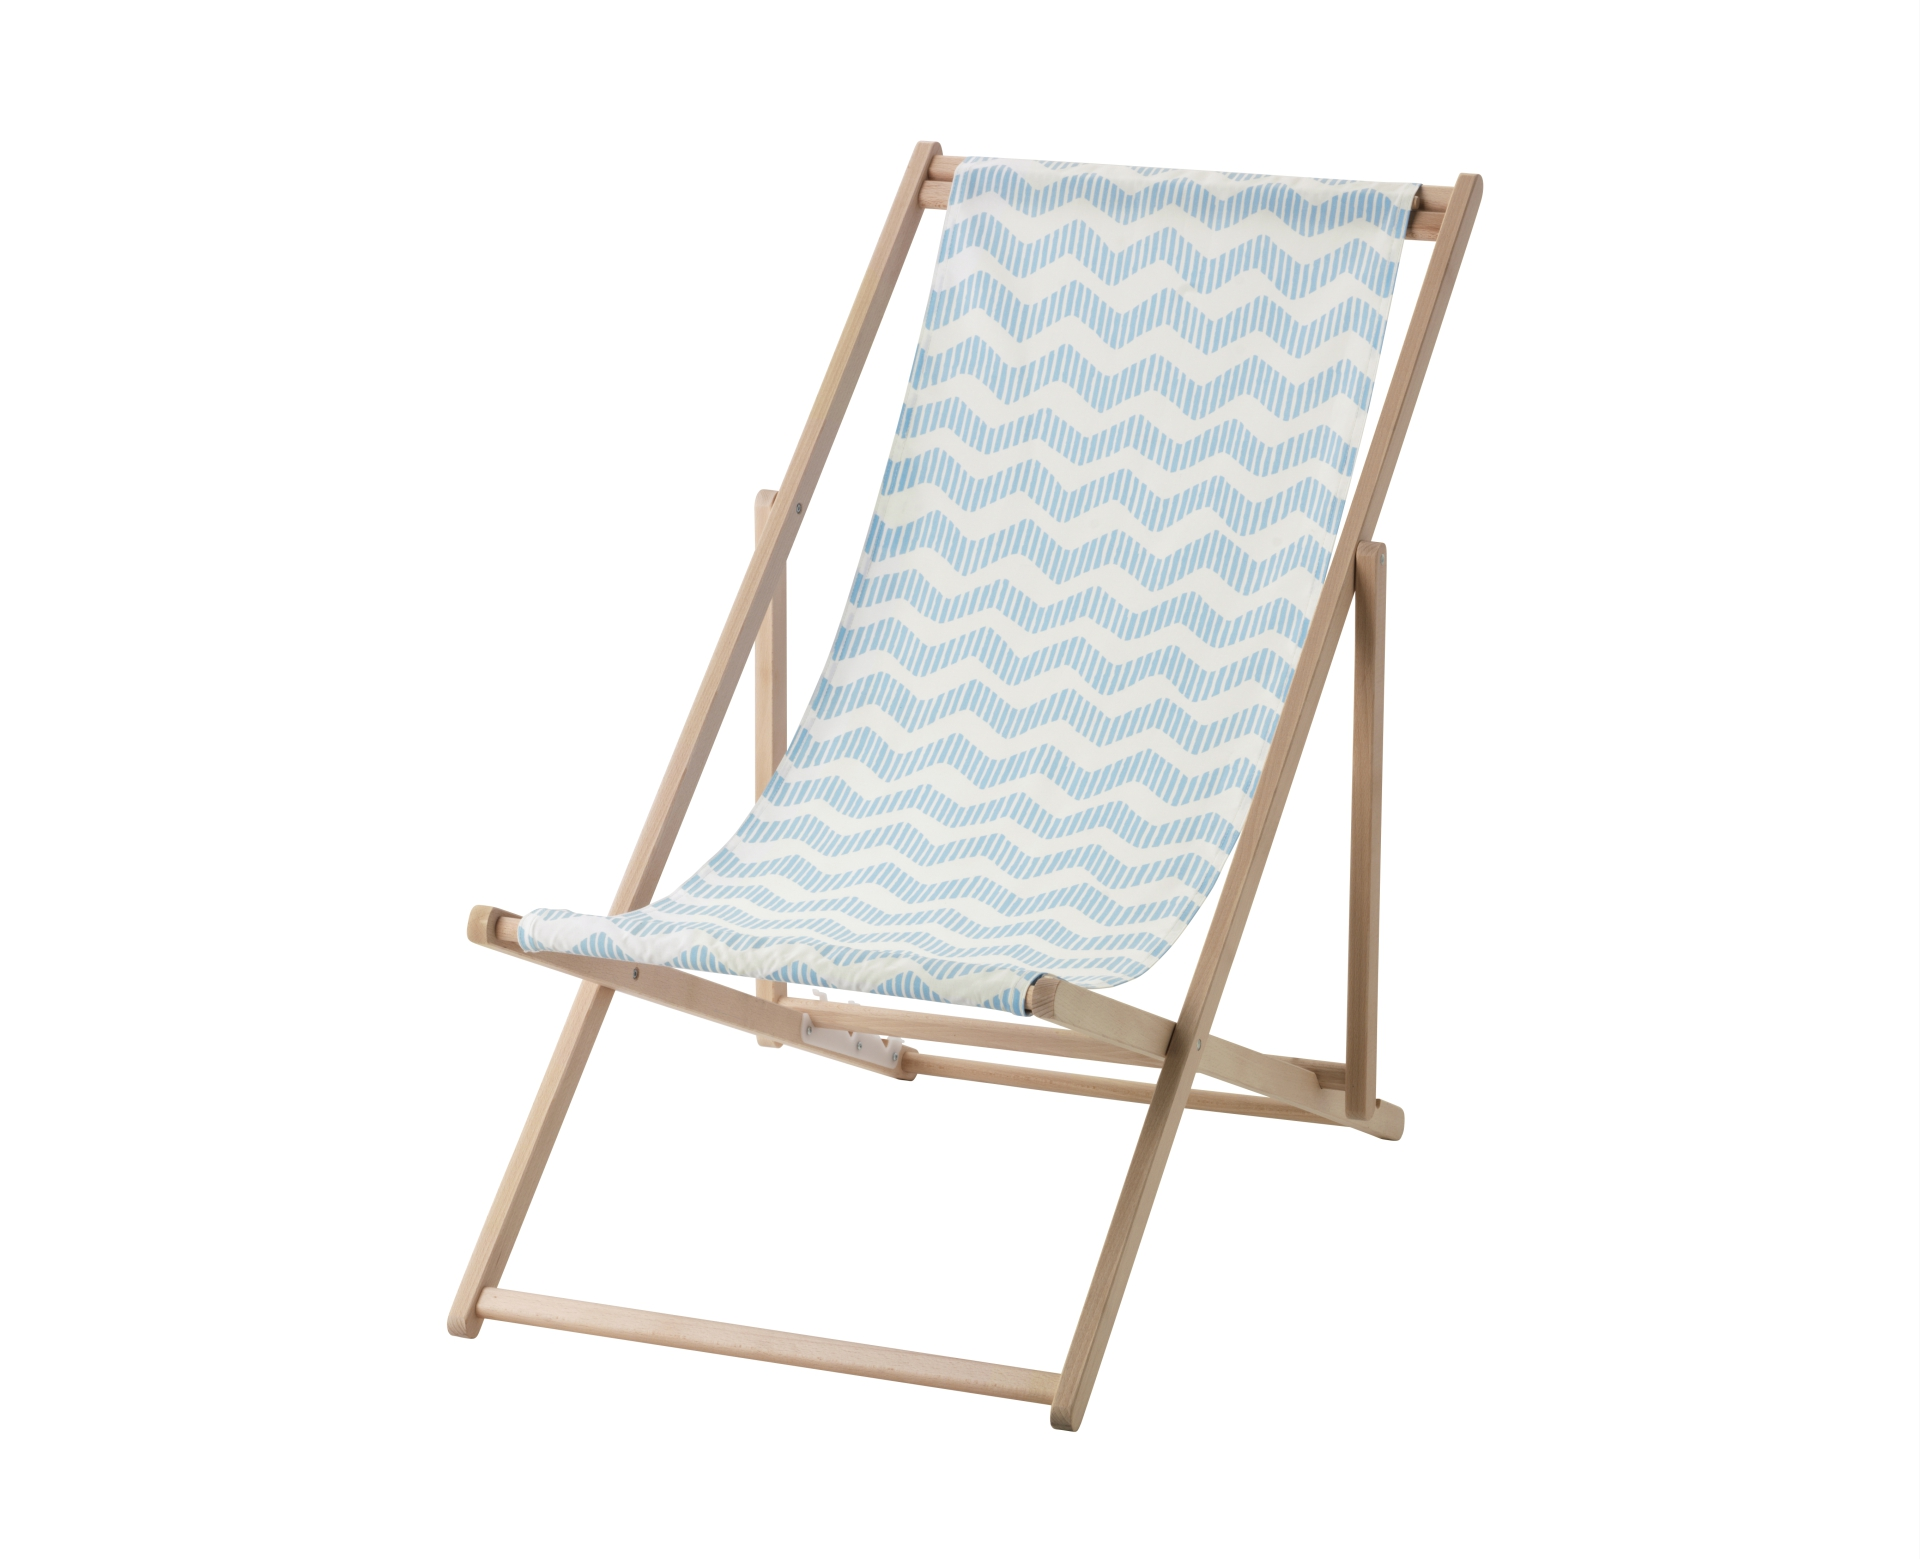 Beach Chair With Article Number 503 120 23